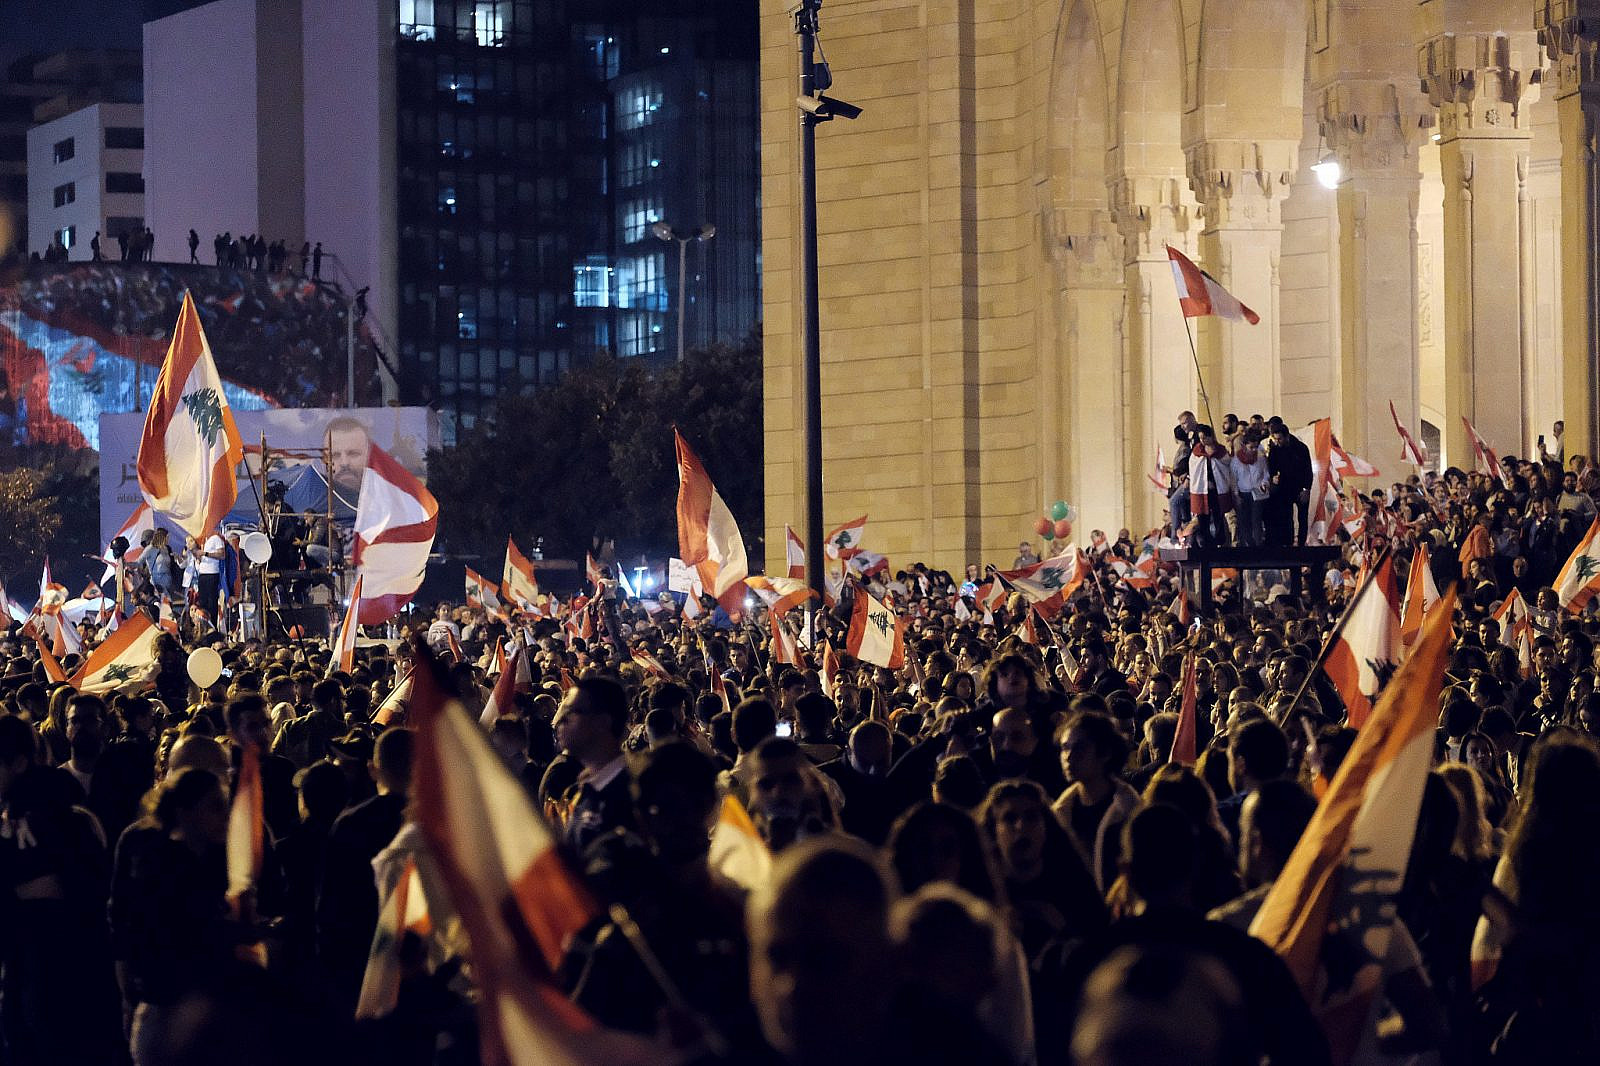 Protests in the evening of Lebanon's 76th Independence Day celebration in Martyr's Square, Beirut, November 22, 2019. (Nadim Kobeissi/Wikimedia Commons)